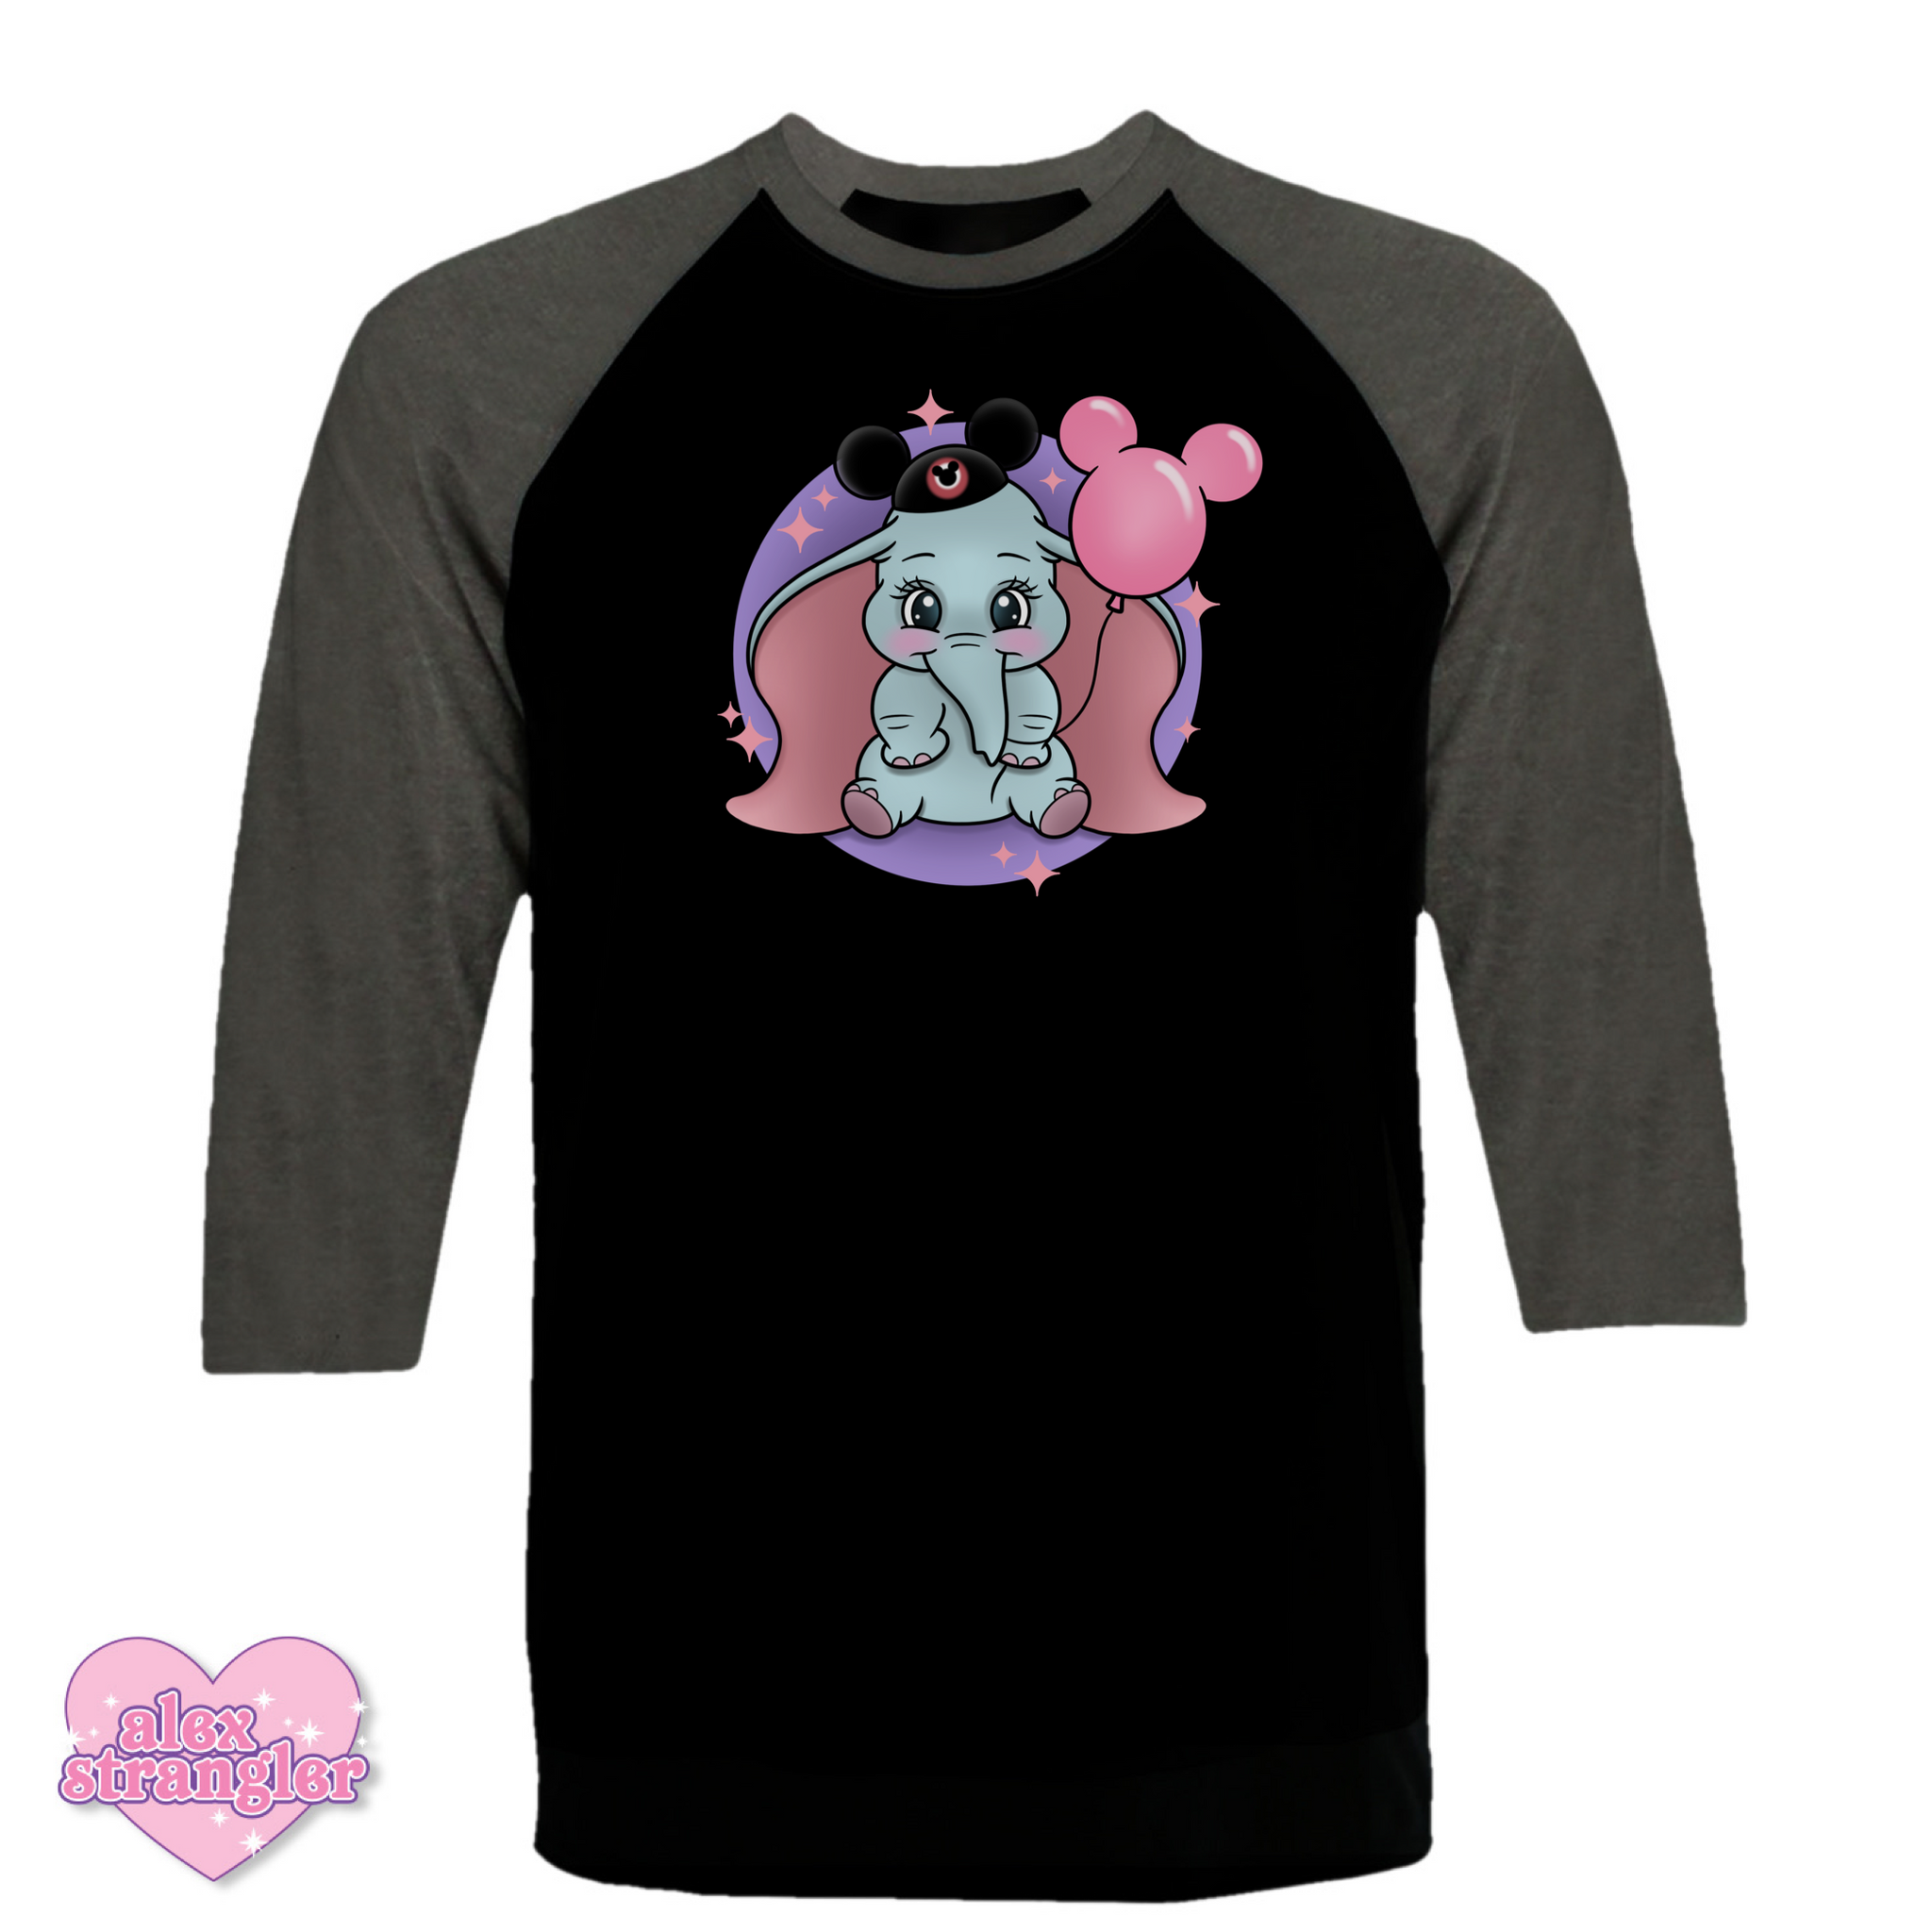 Dumbo Goes To The Park - Men's/Unisex Raglan